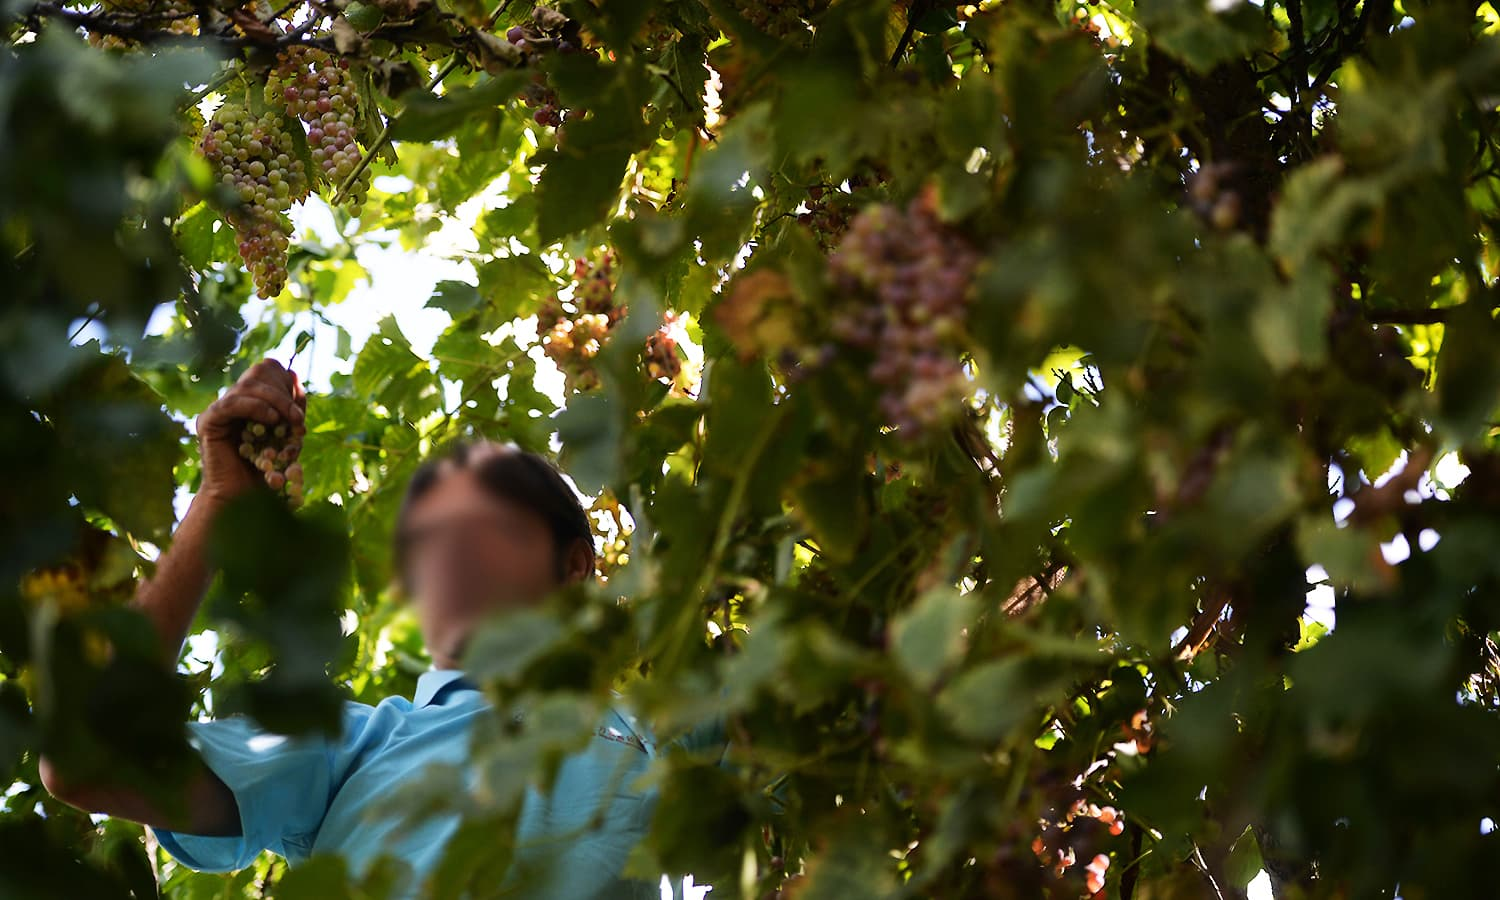 Ahsan picks grapes from a tree for brewing wine in his garden. ─ AFP